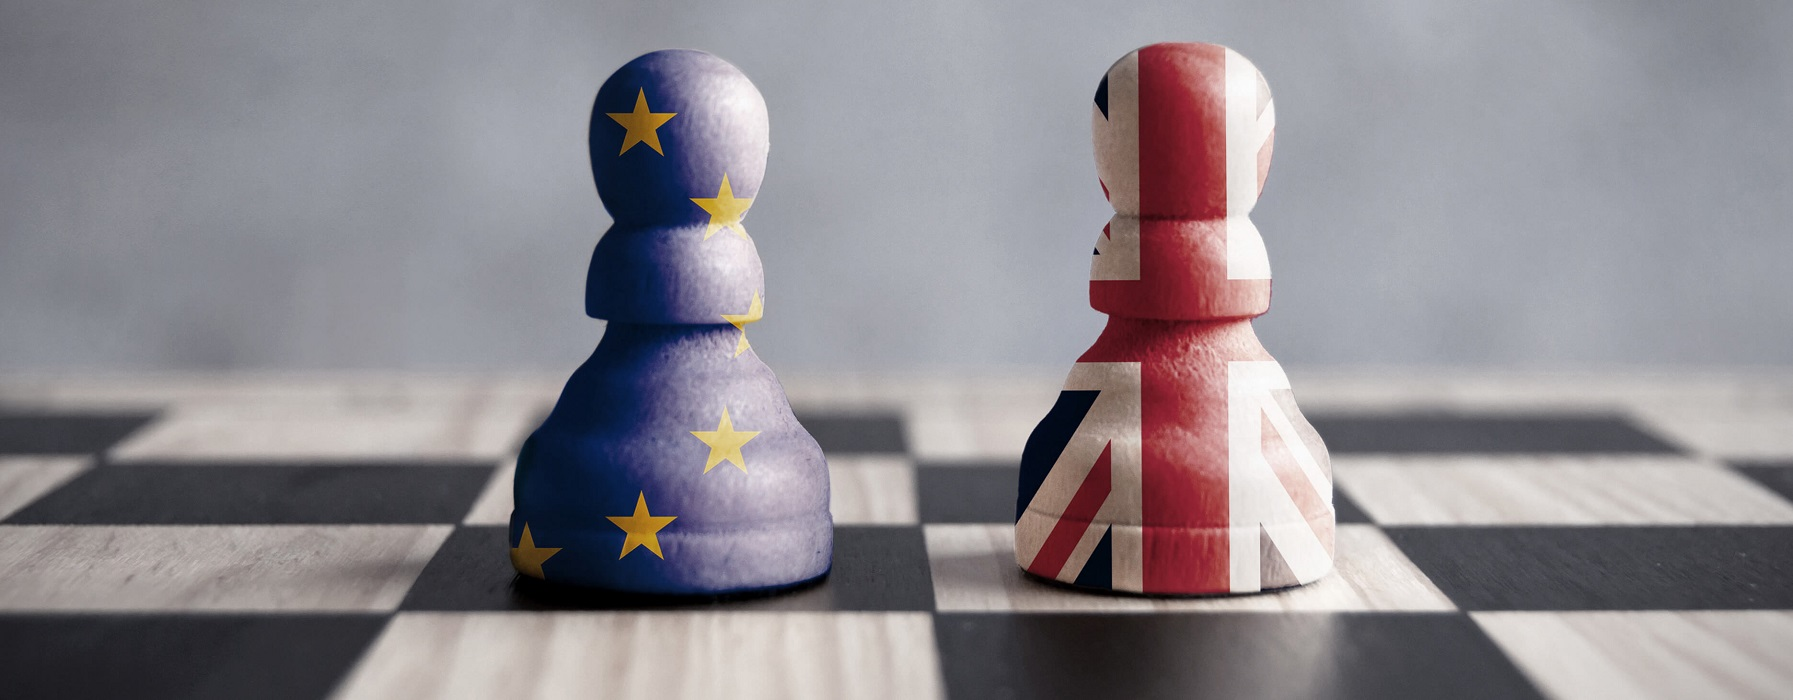 Two pawns stand alongside one another on a chessboard, one draped in the EU flag, the other in that of the United Kingdom